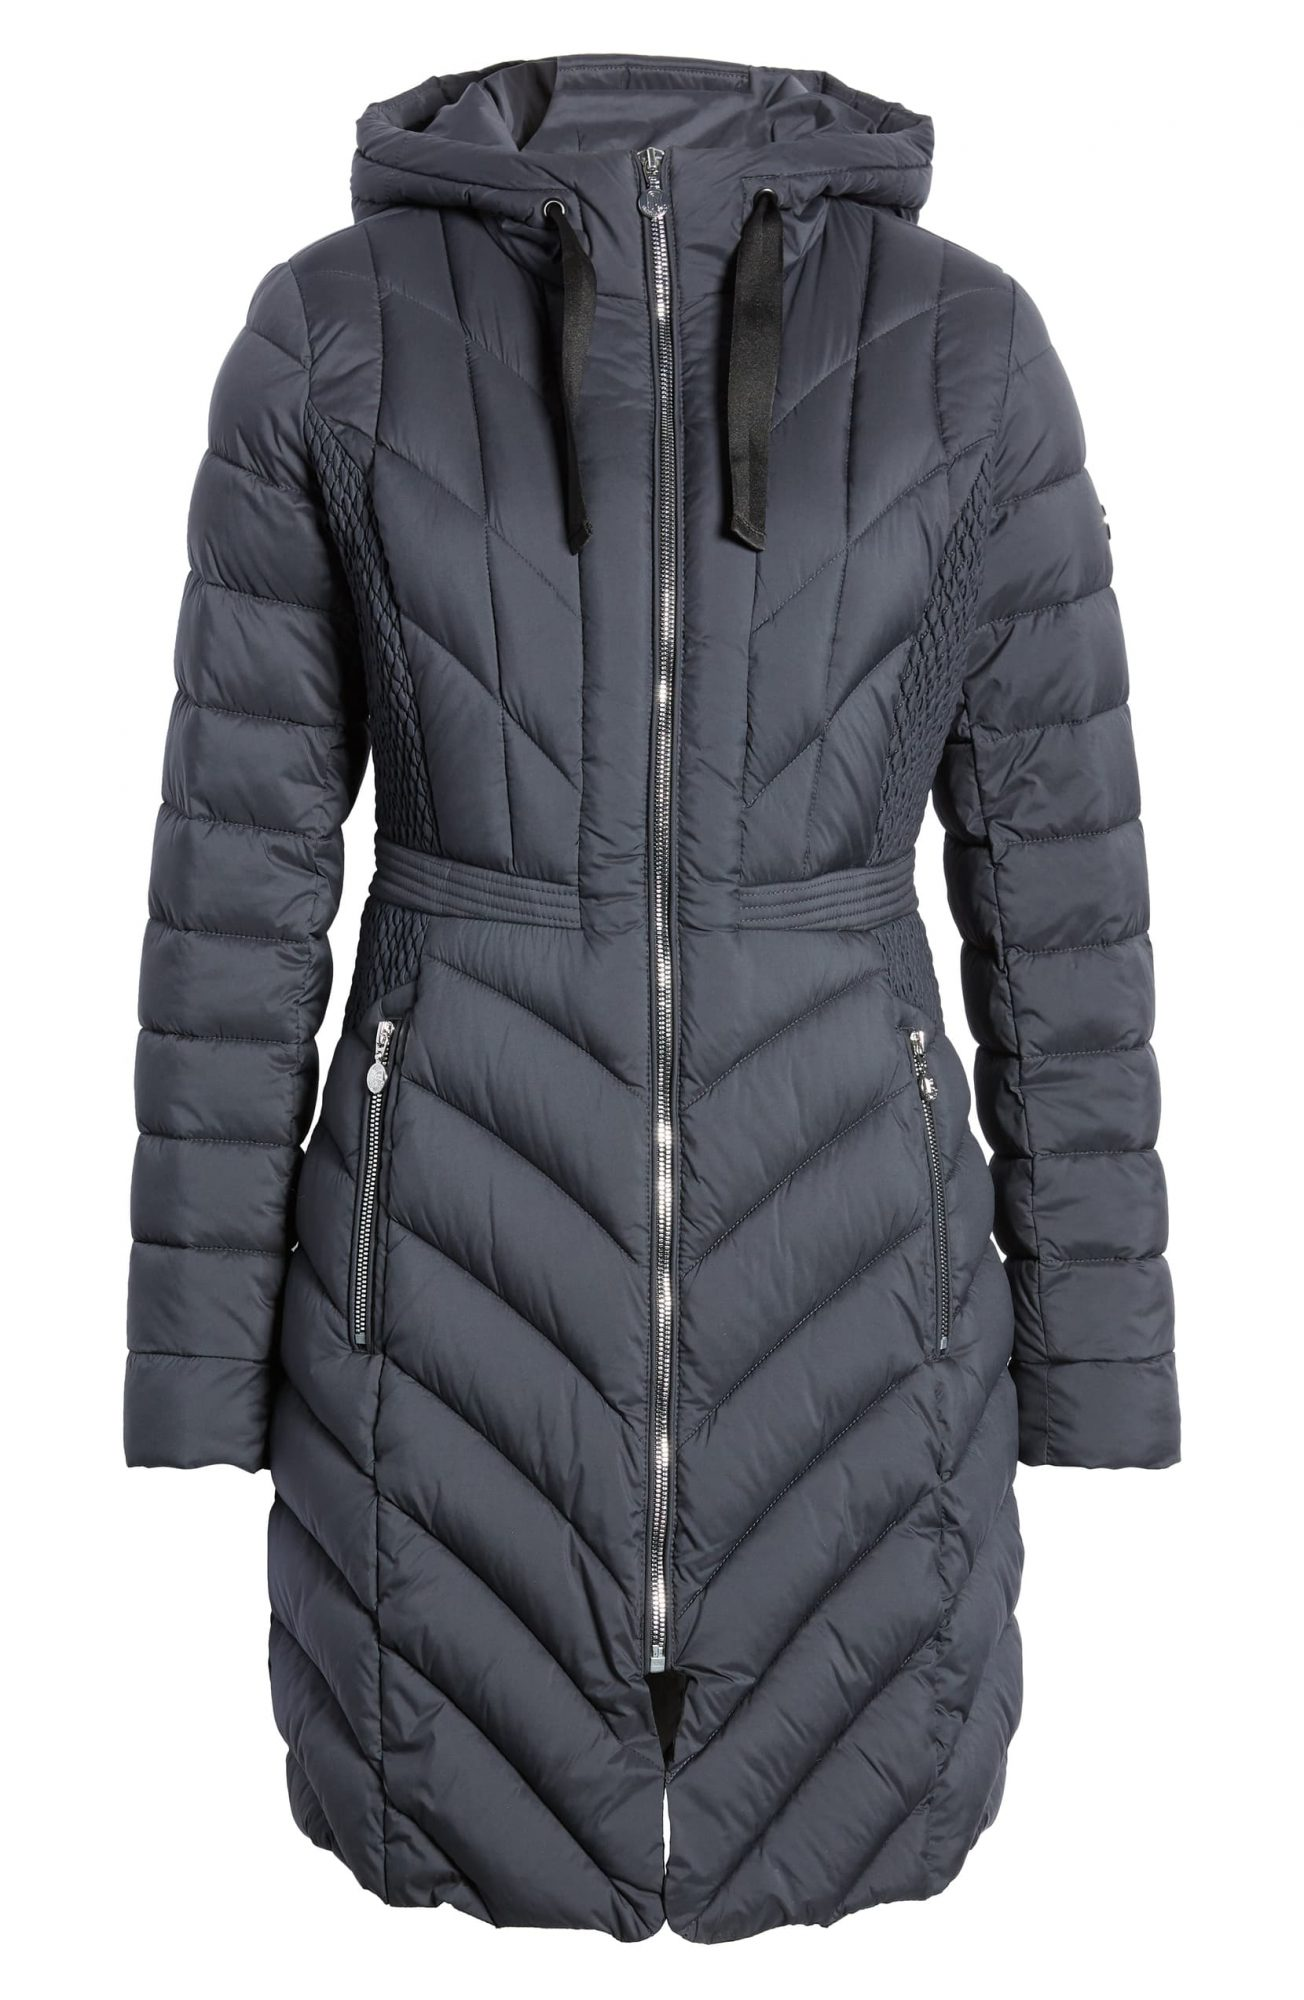 Nordstrom Black Friday Sale 2019 Bernardo Packable Hooded Walker Coat